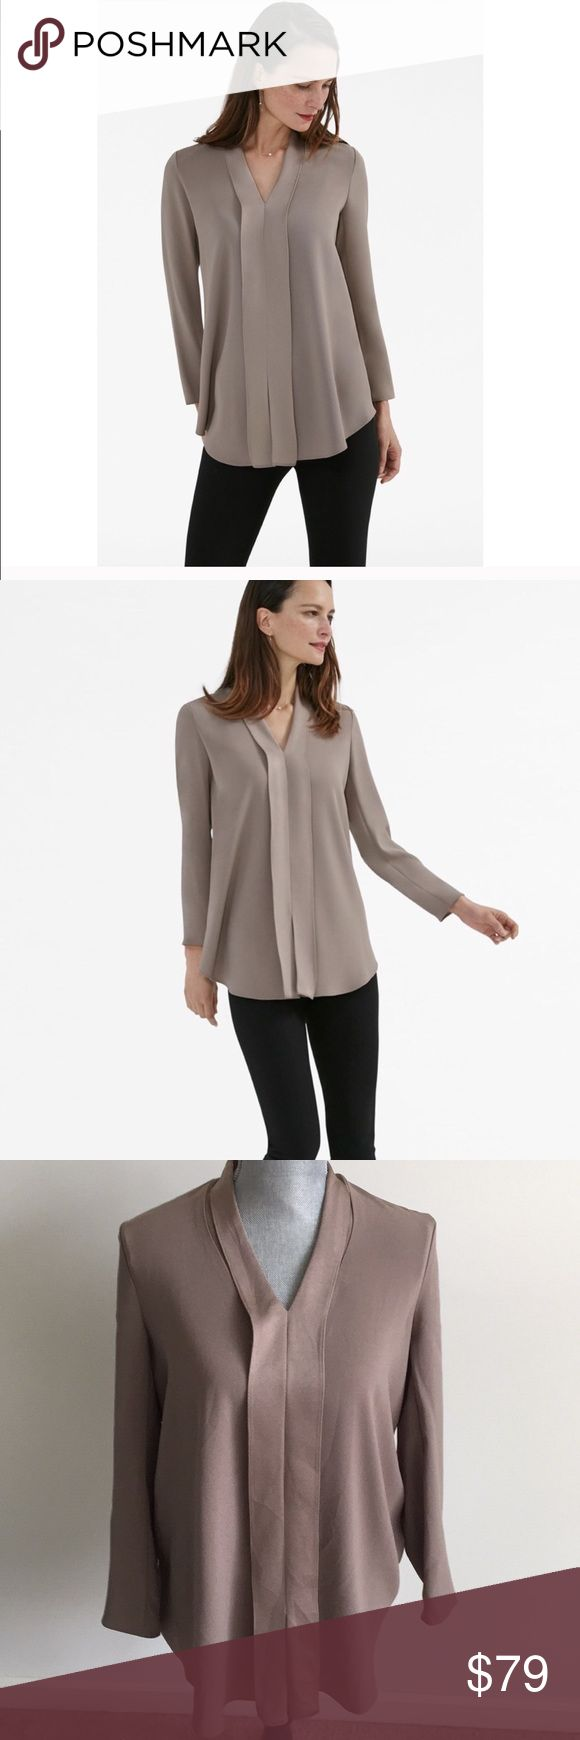 MM Lafleur Fitzgerald Tunic Gorgeous beige long sleeve tunic top. Oversized flowy fit. In beautiful condition with no flaws. MM Lafleur Tops